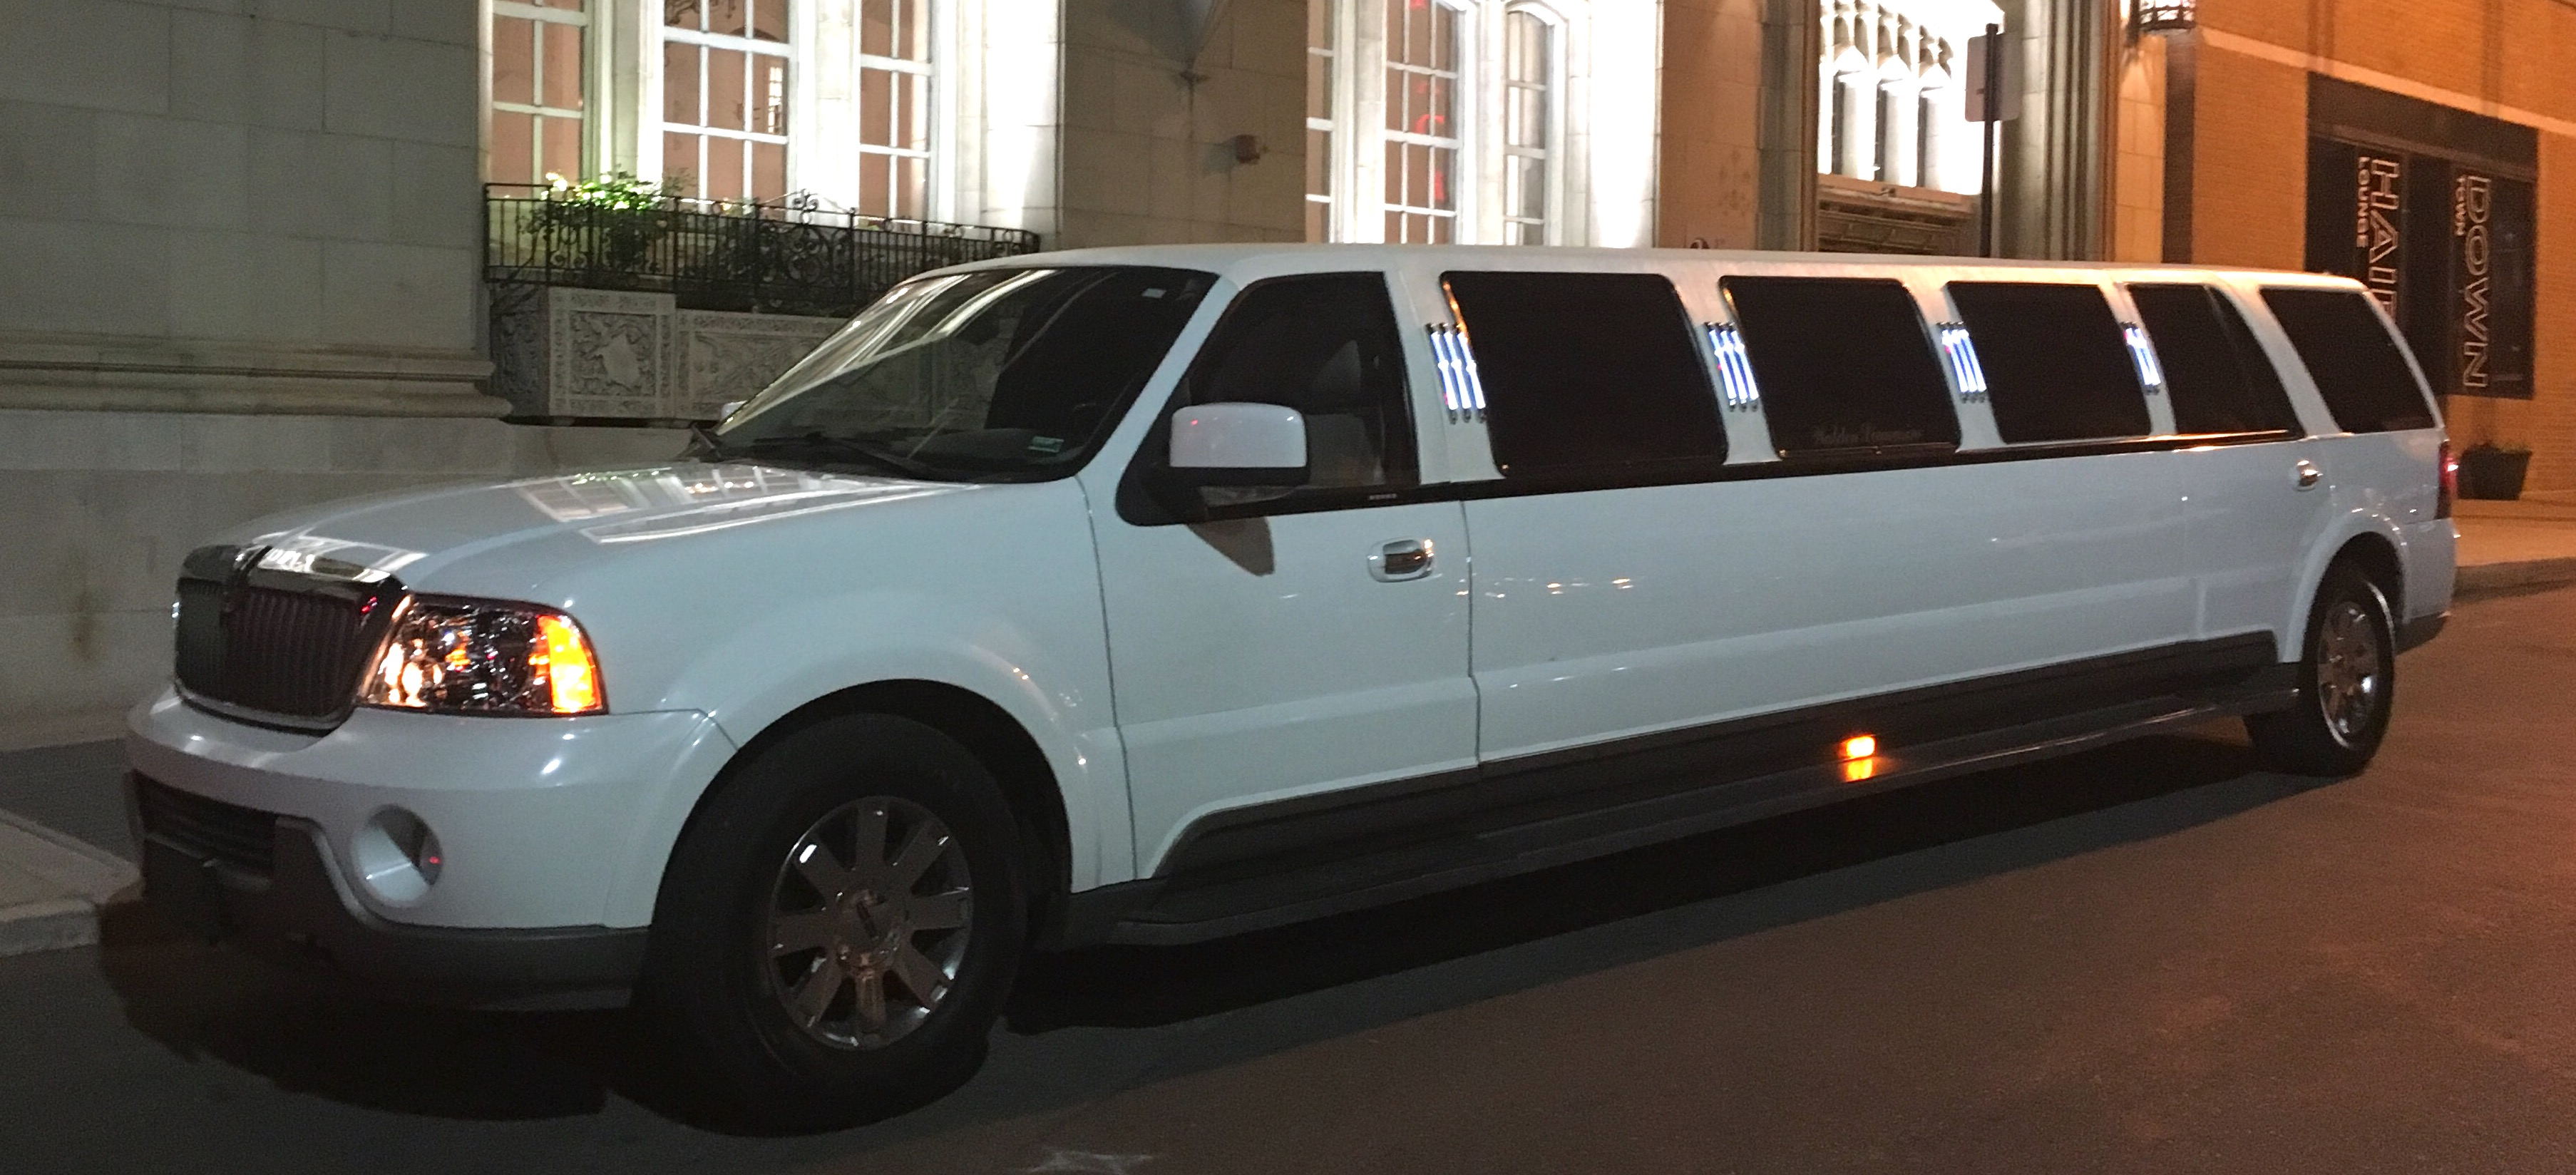 SUV limo rental kansas city 2